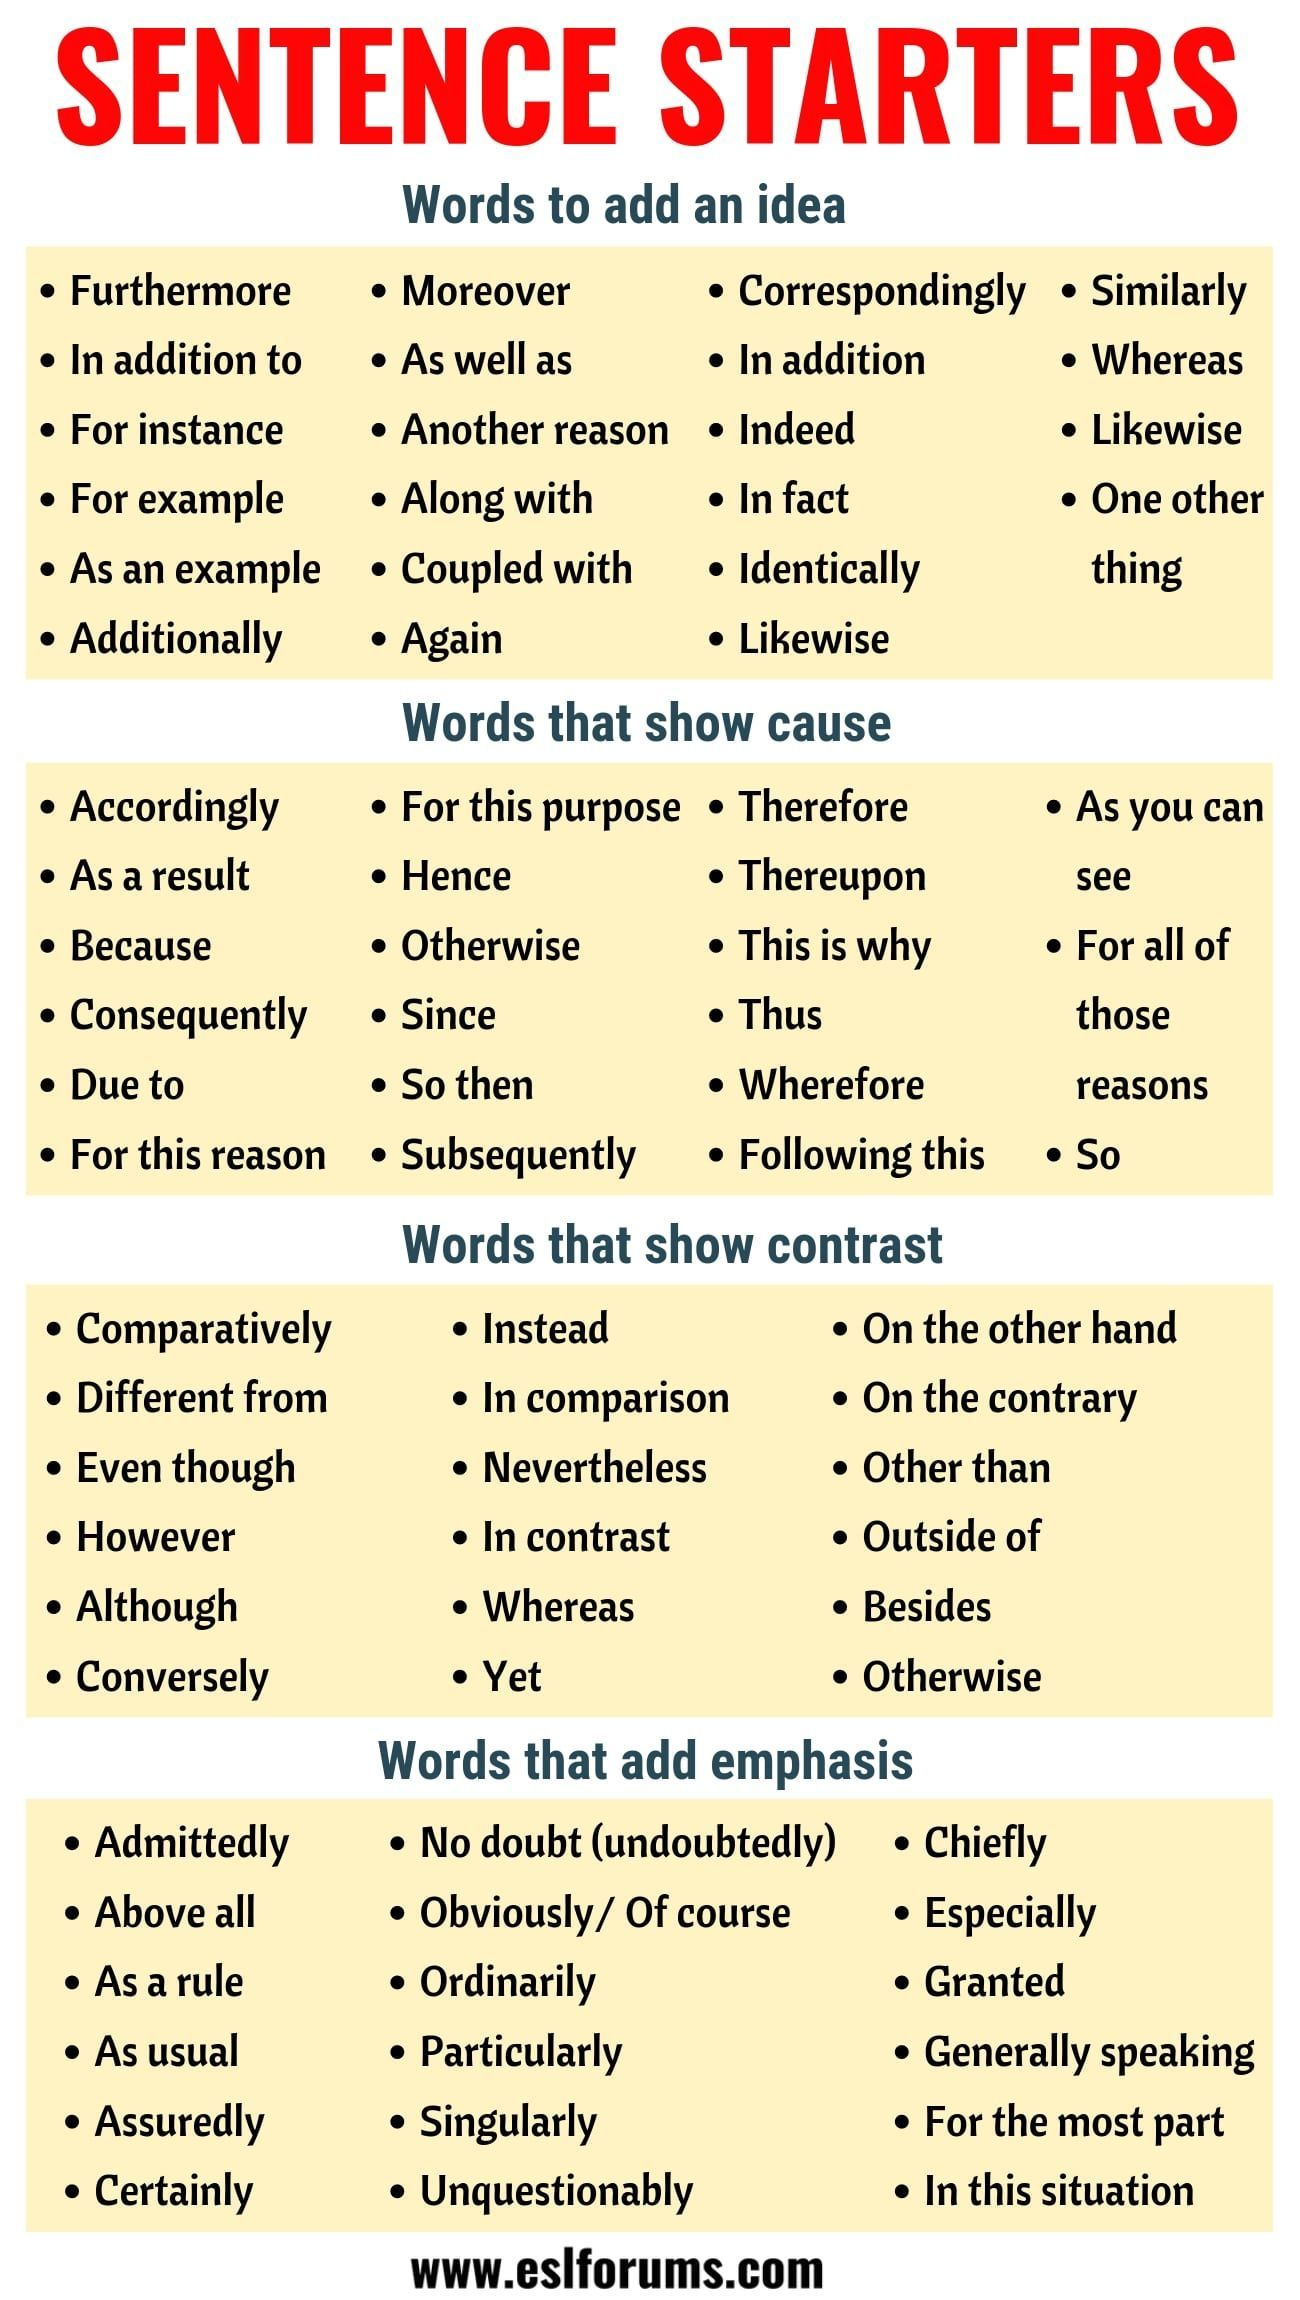 Sentence Starters: Useful Words and Phrases You Can Use As Sentence Starters - ESL Forums - #phrases #sentence #starters #useful #words - #New #learning